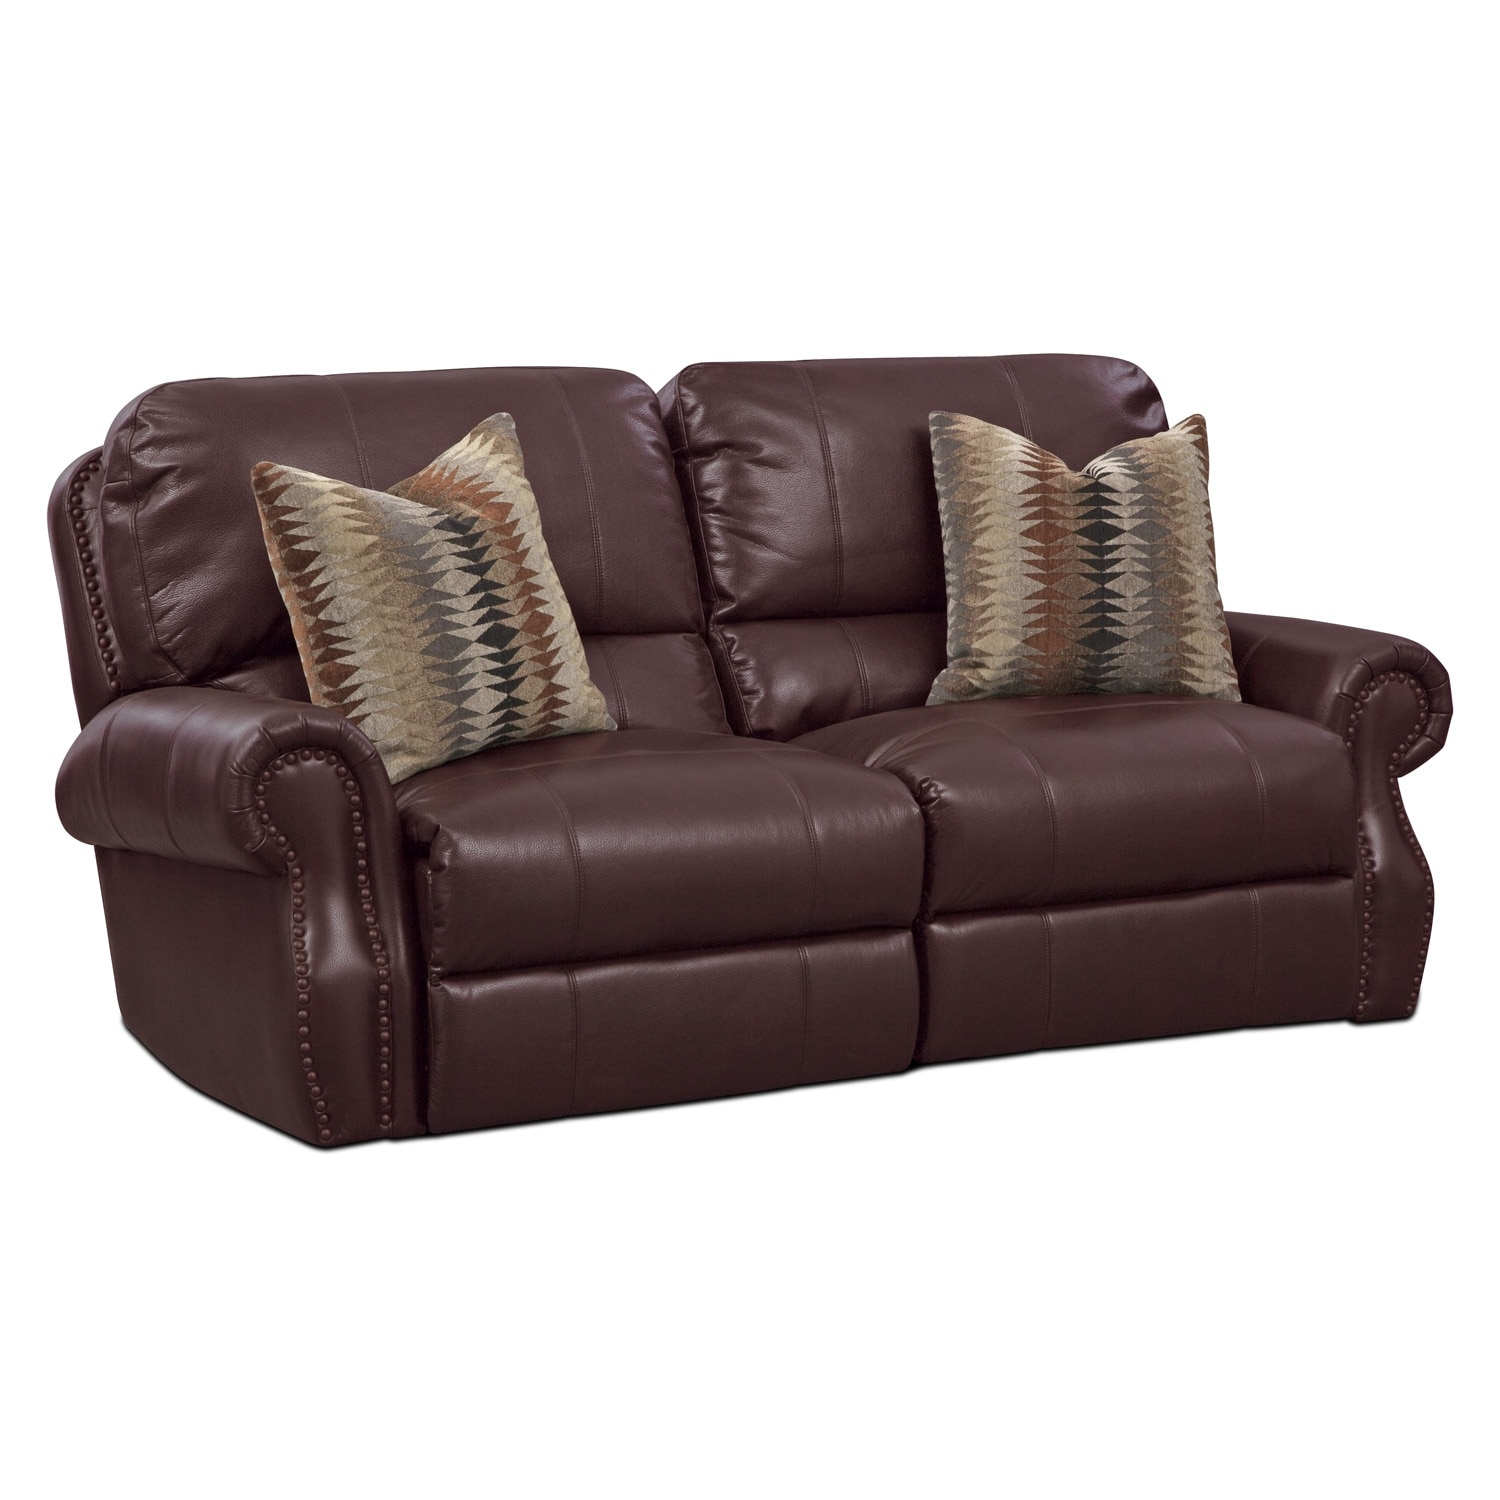 Living Room Furniture - Princeton 2 Pc. Power Reclining Sofa